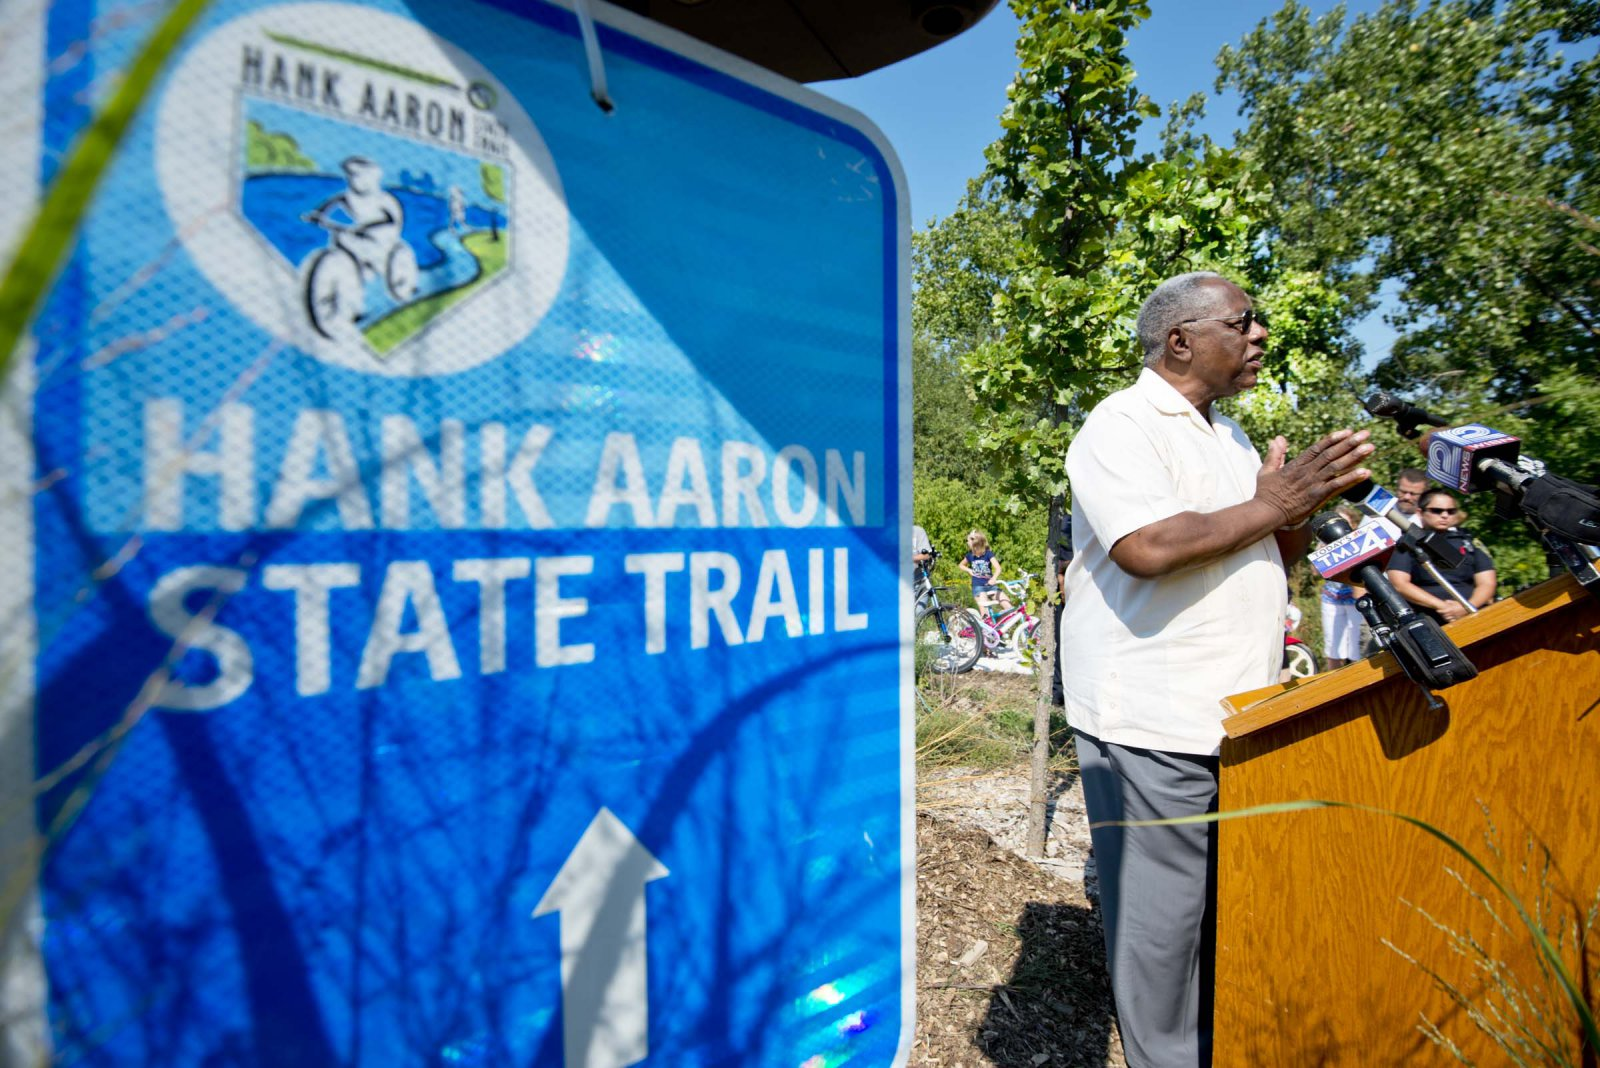 2012 - Hank Aaron at the groundbreaking for Three Bridges Park and a Hank Aaron State Trail extension to connect the Valley Passage to Mitchell Park Domes